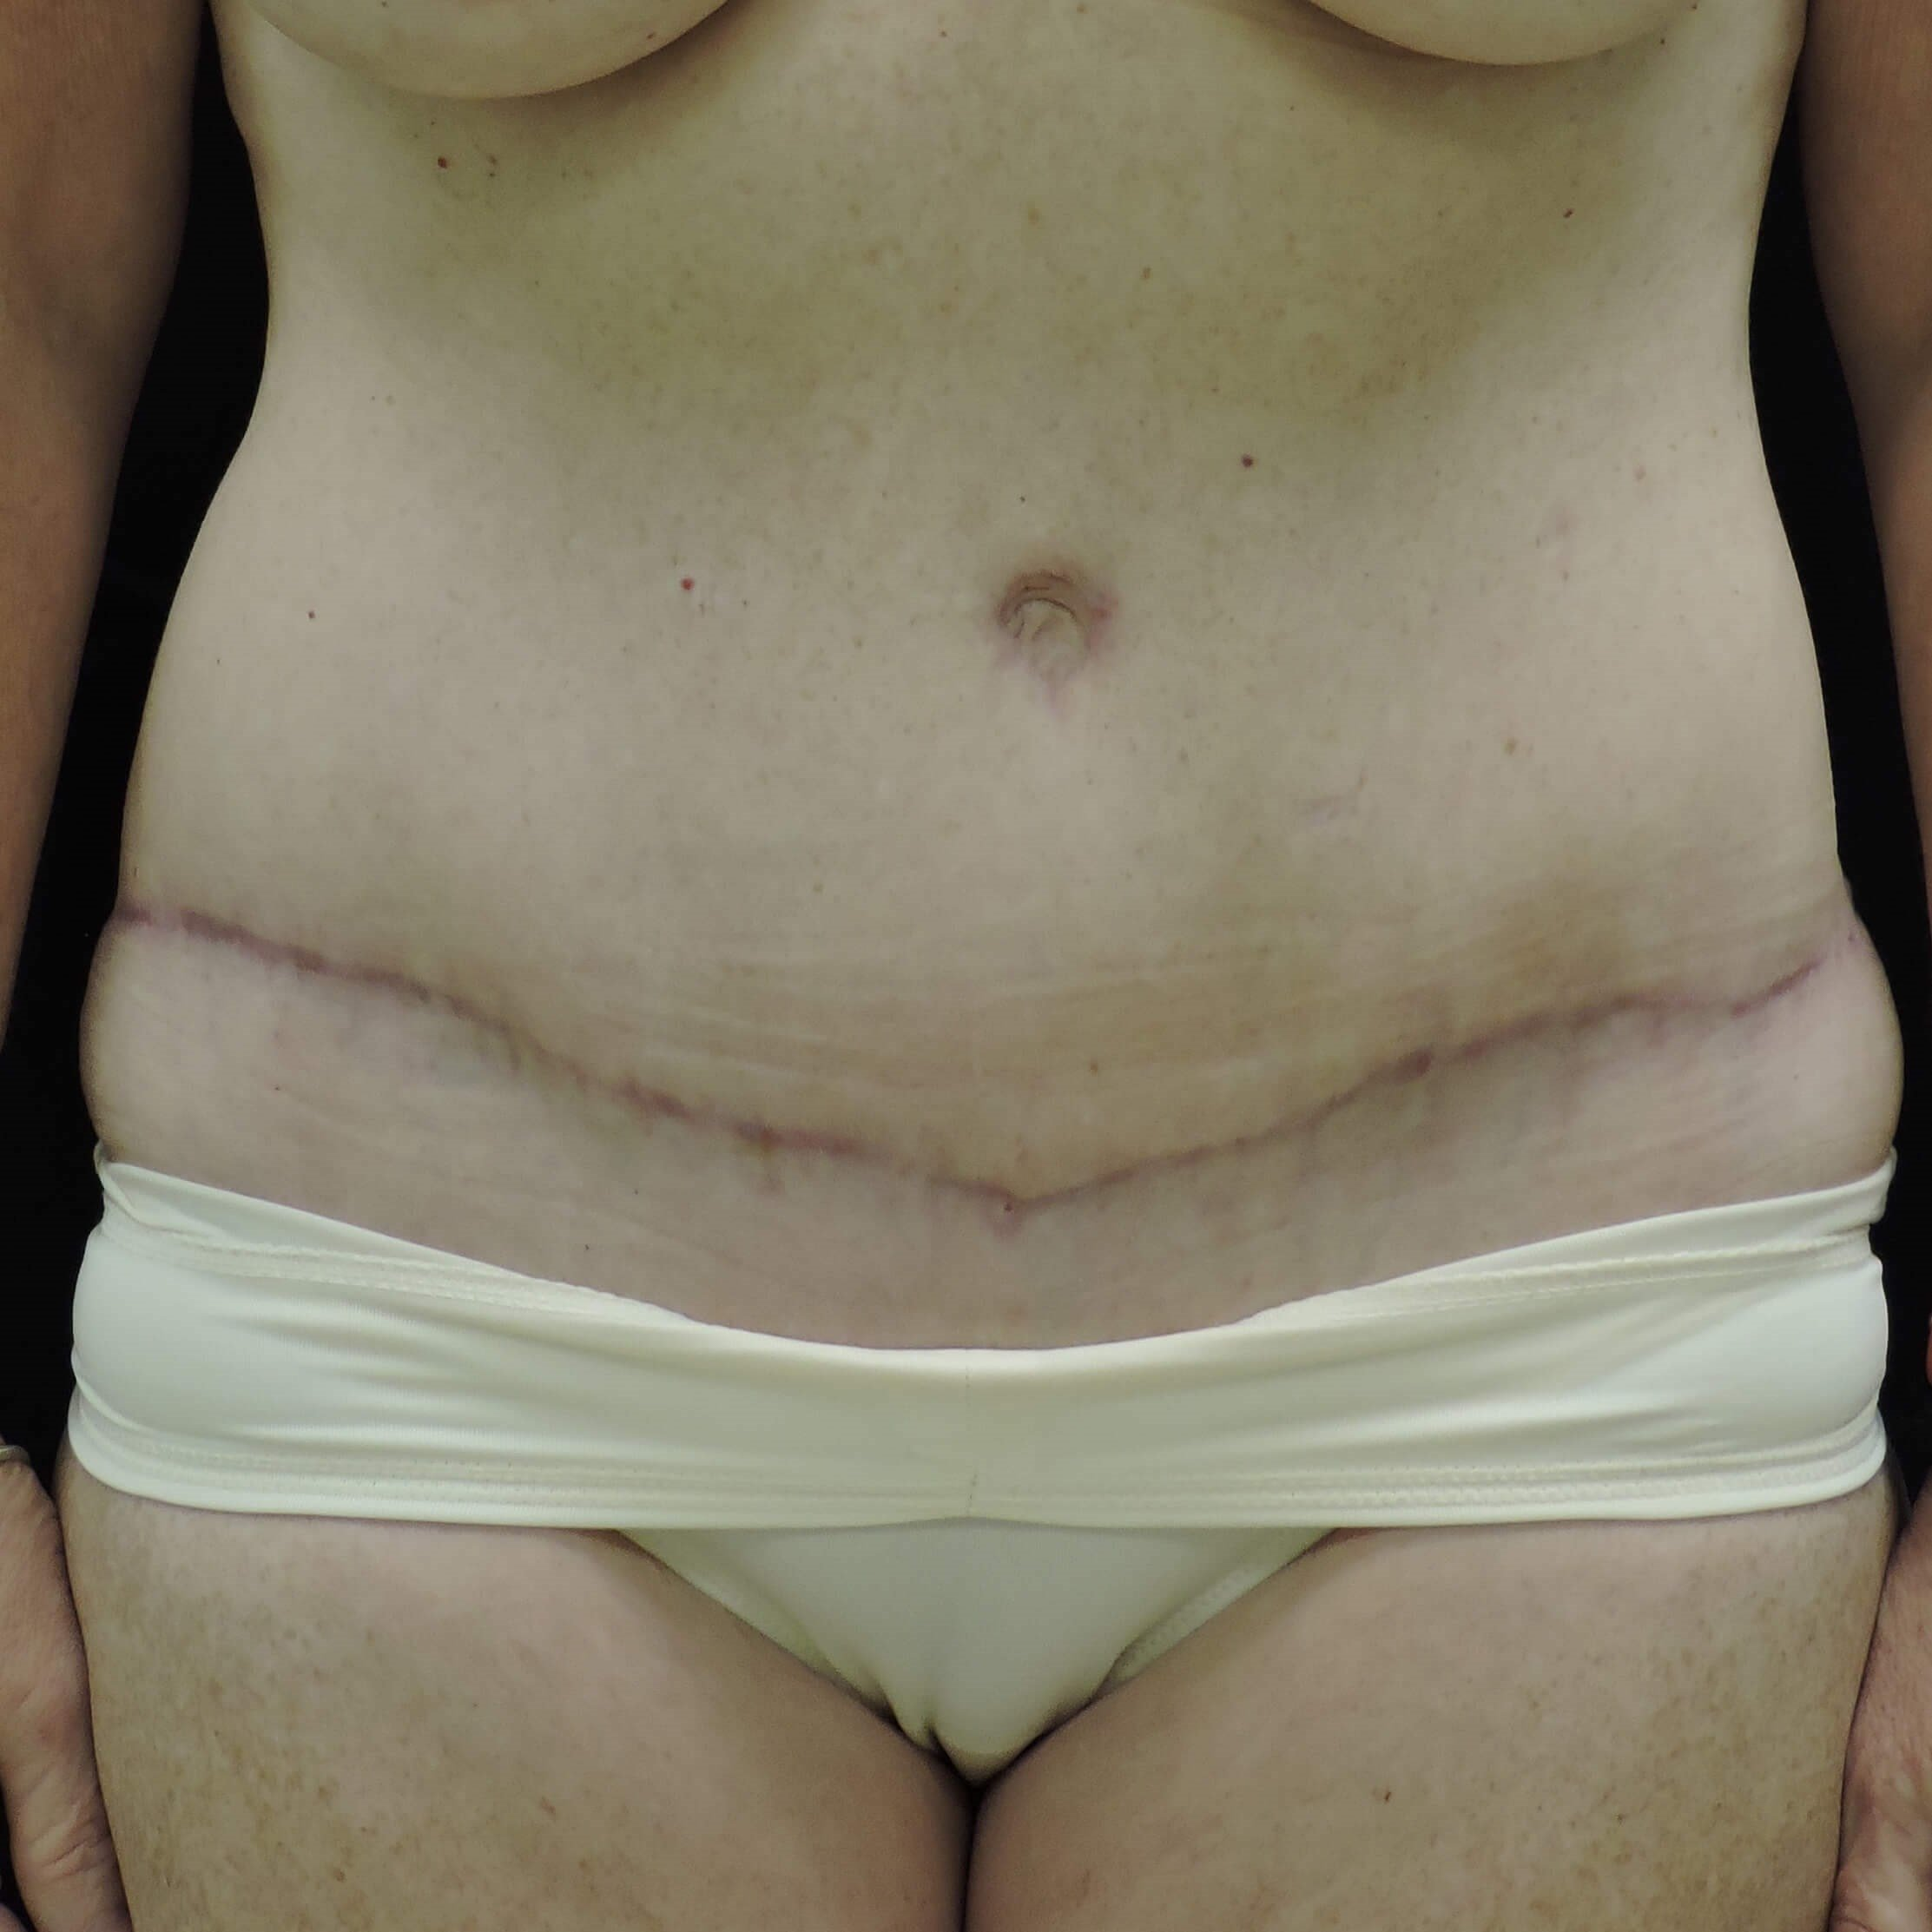 Tummy Tuck & Flank Liposuction After